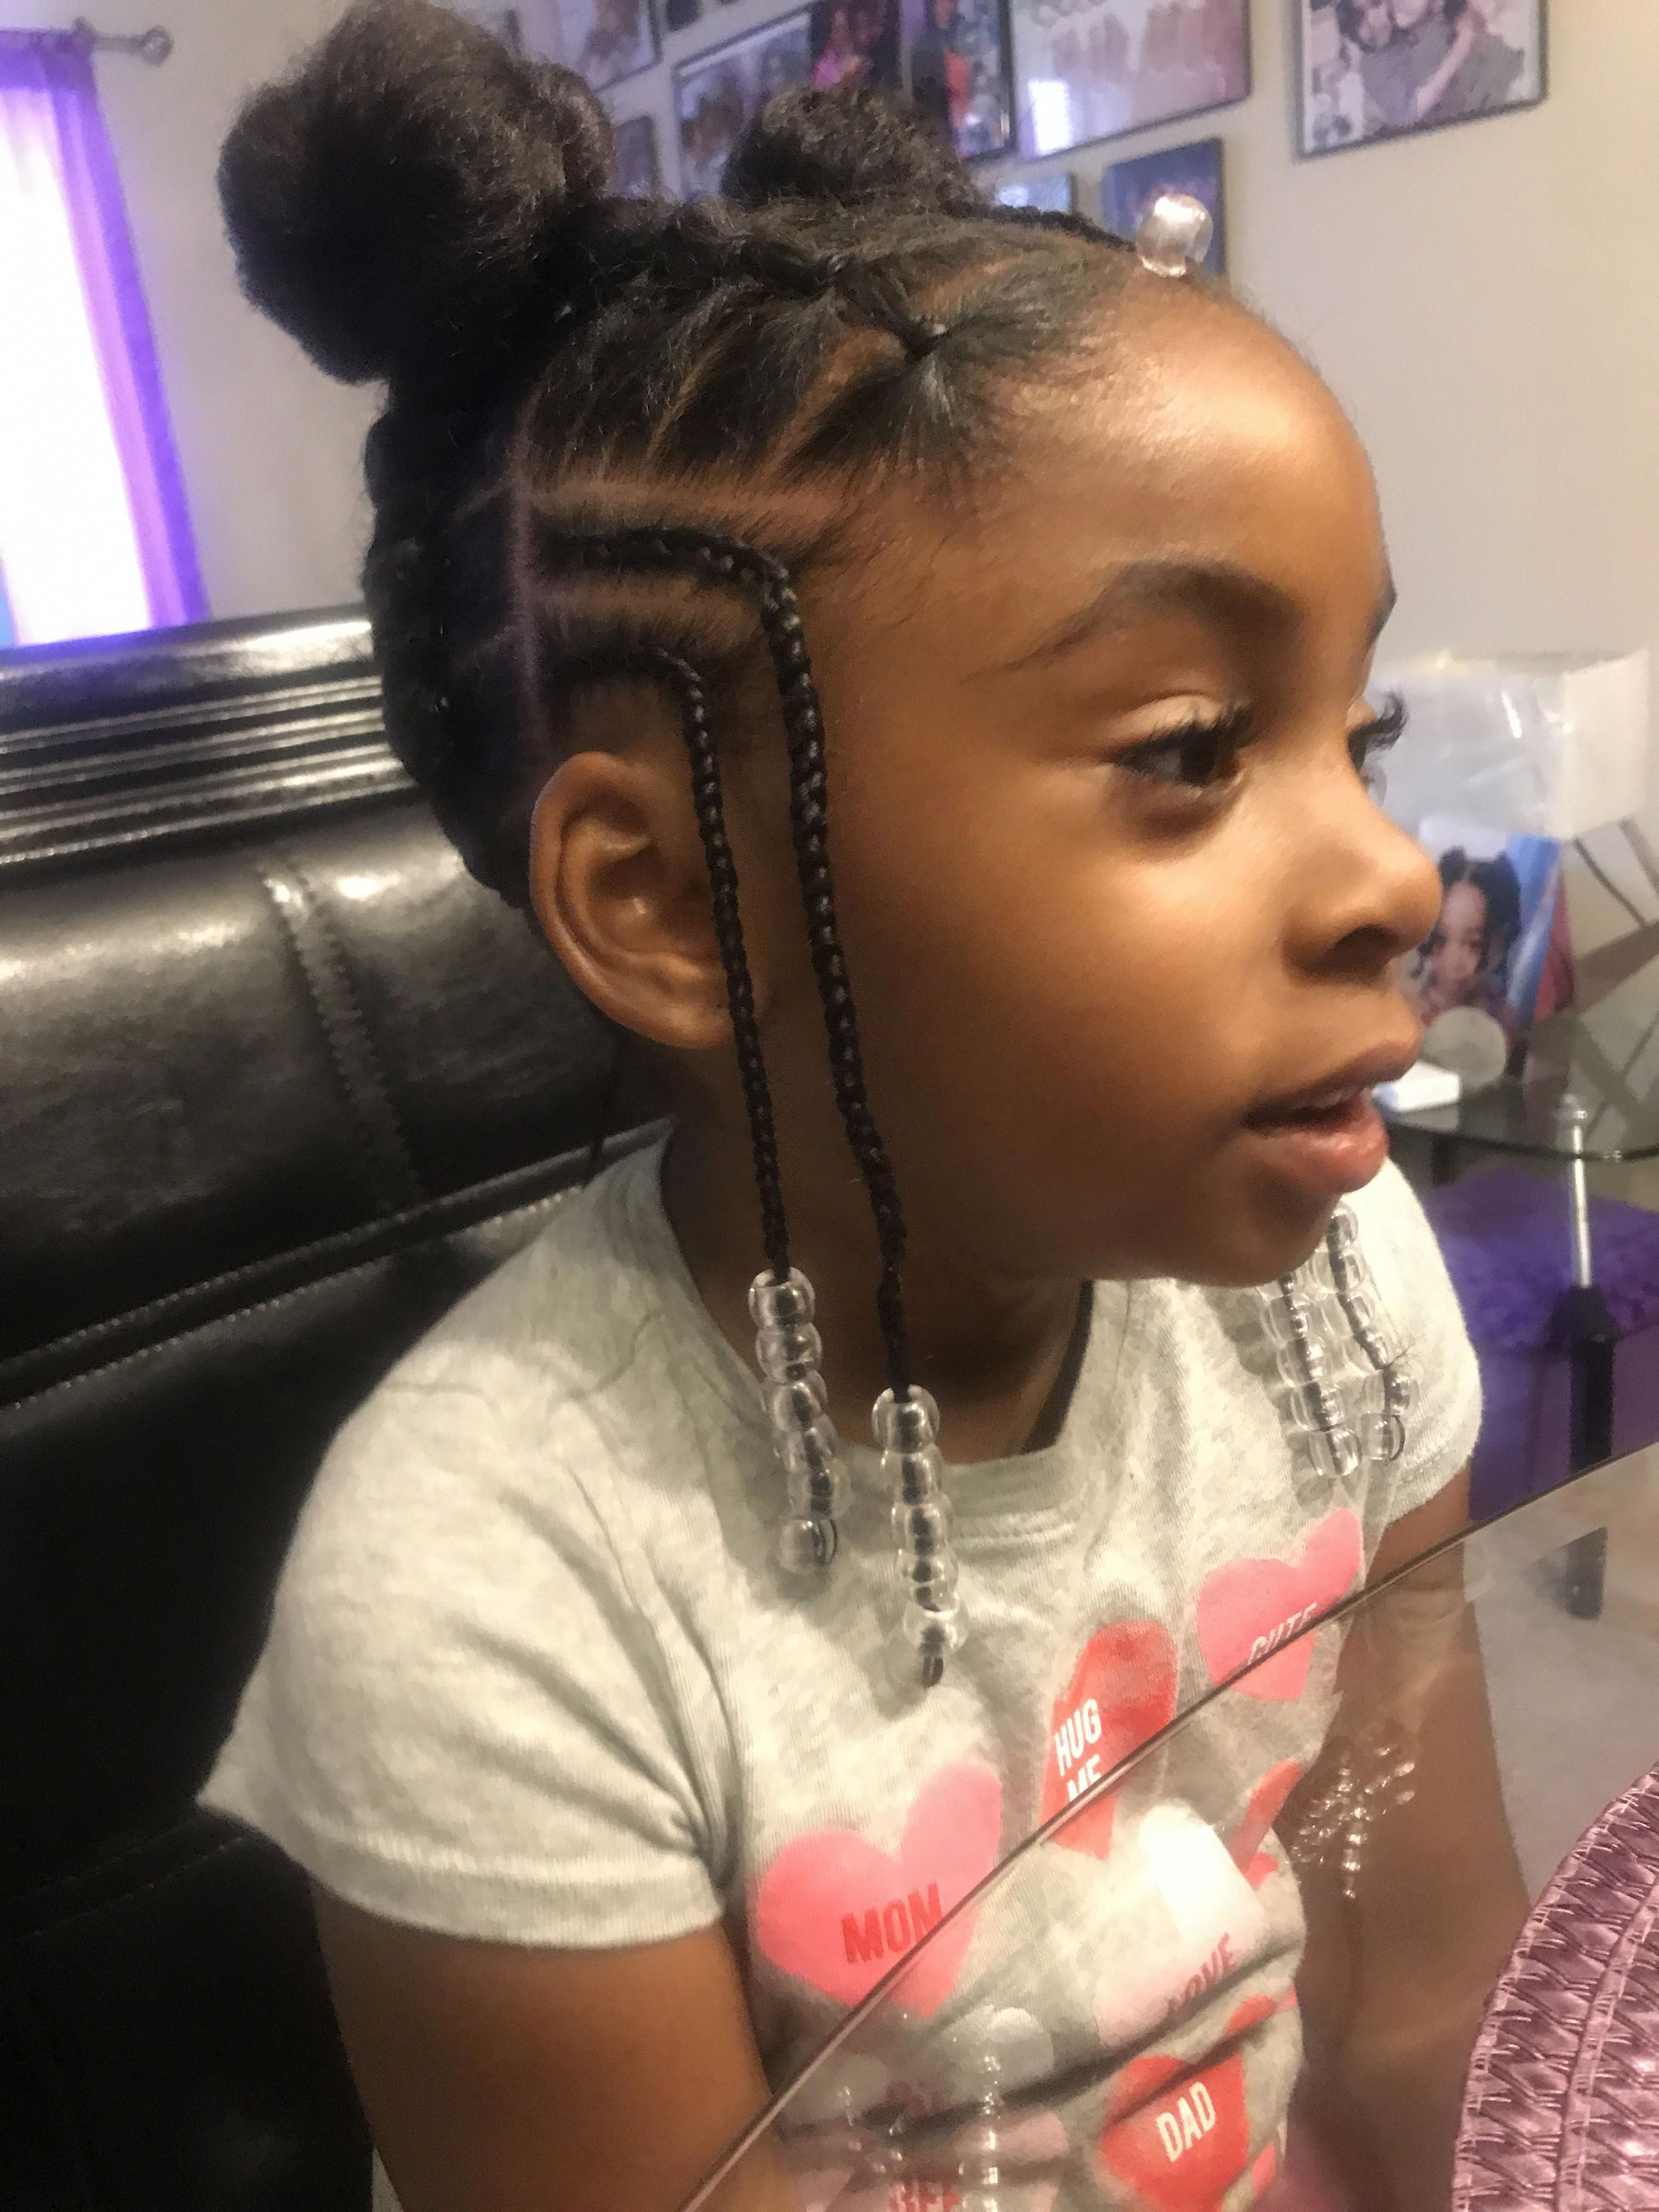 Hairstyles For 1 Year Old Baby Girl : hairstyles, Hairstyle, Short, White, Hairstyles, Girl…, Kids,